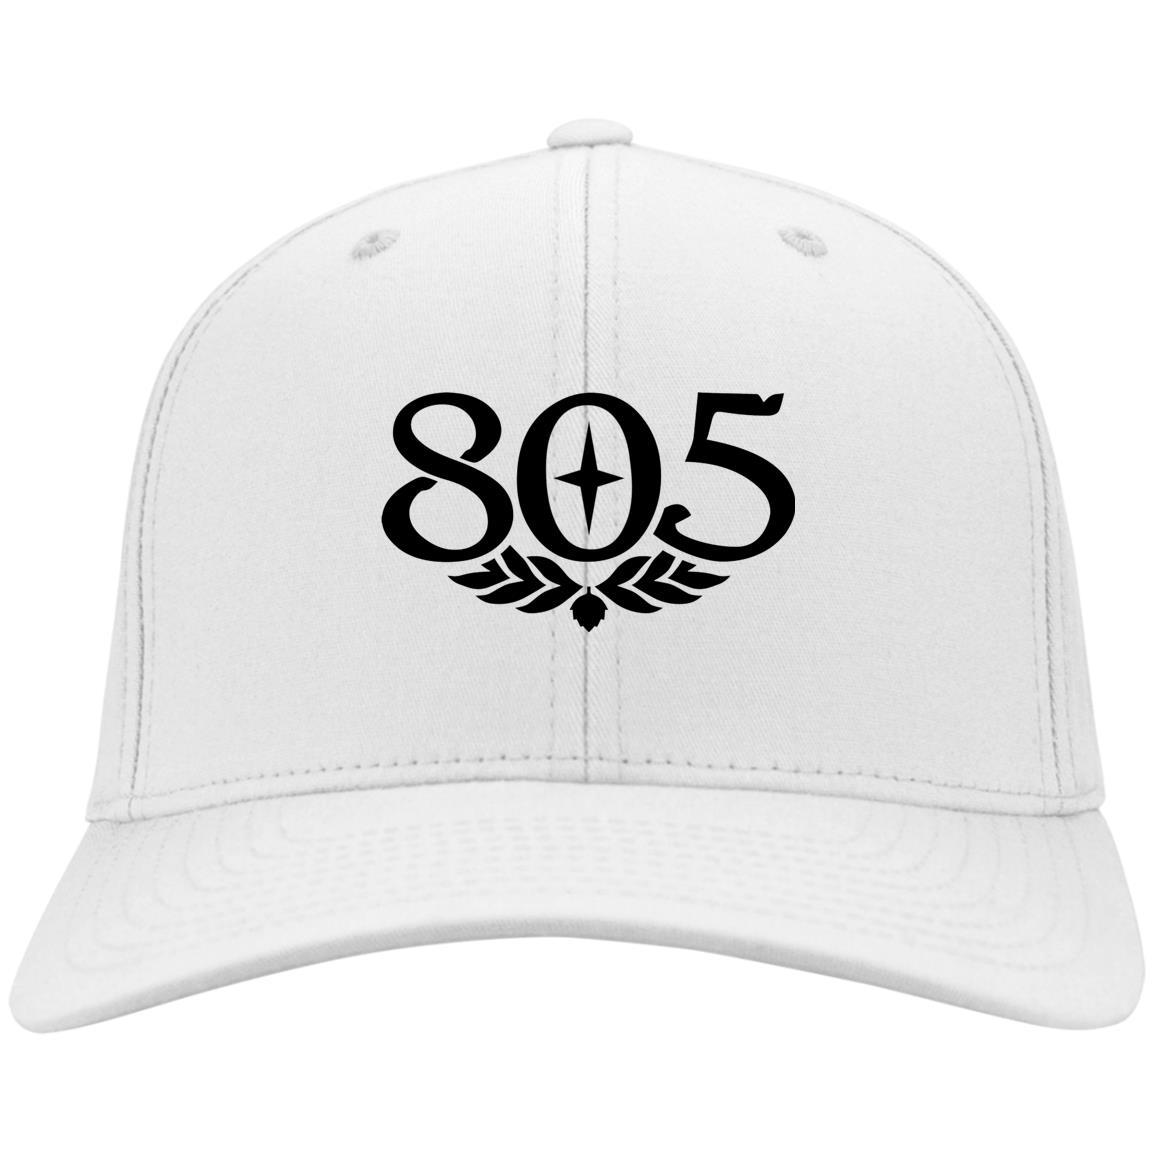 805 Beer Black - Port & Co. Twill Cap White